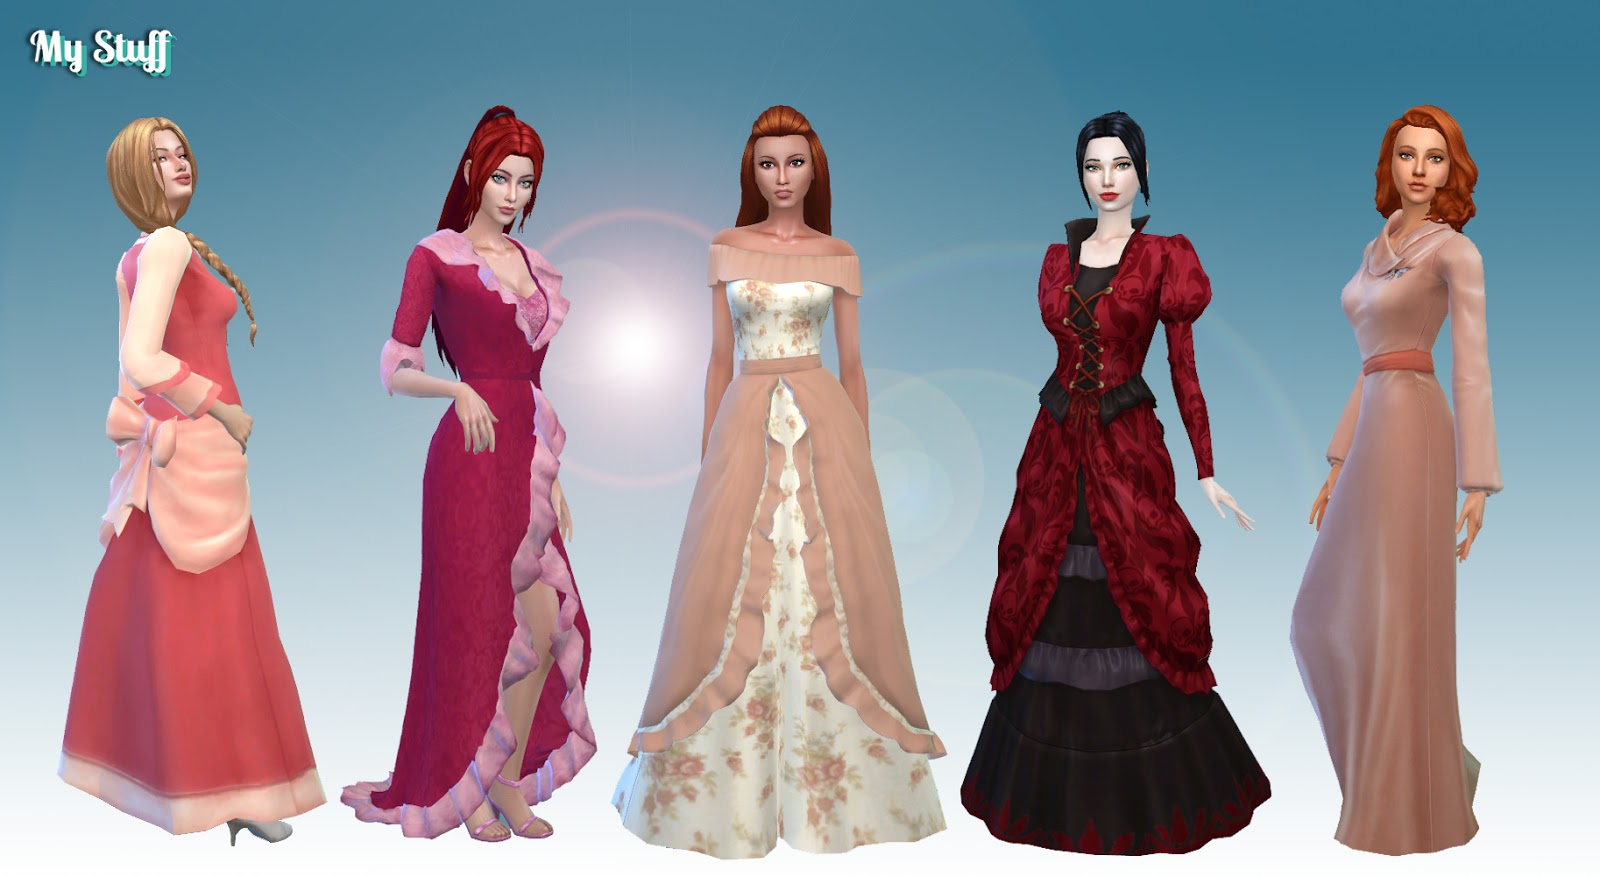 My Stuff Female Historical Clothes Pack 2